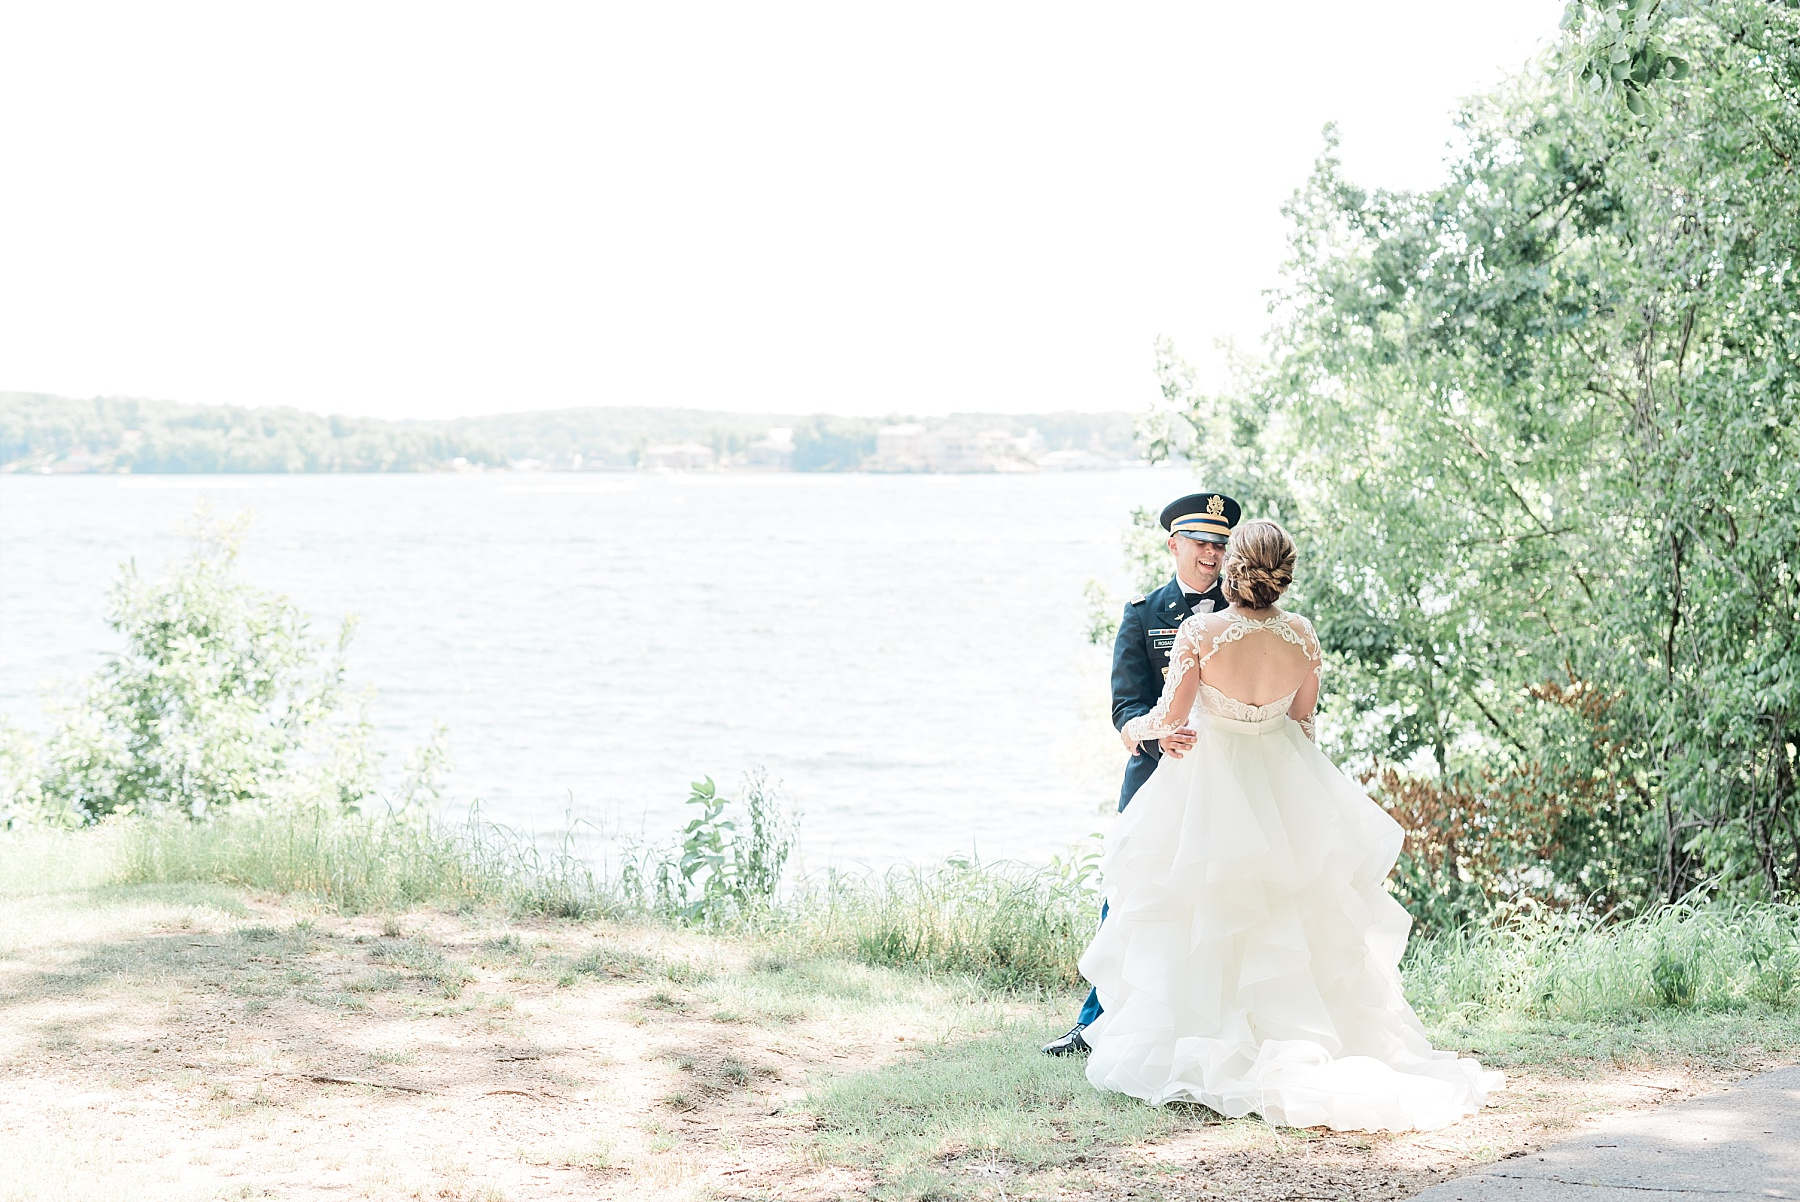 Beachside Sunset Wedding At Lodge Of Four Seasons At Lake Of The Ozarks By Kelsi Kliethermes Photography_0007.jpg